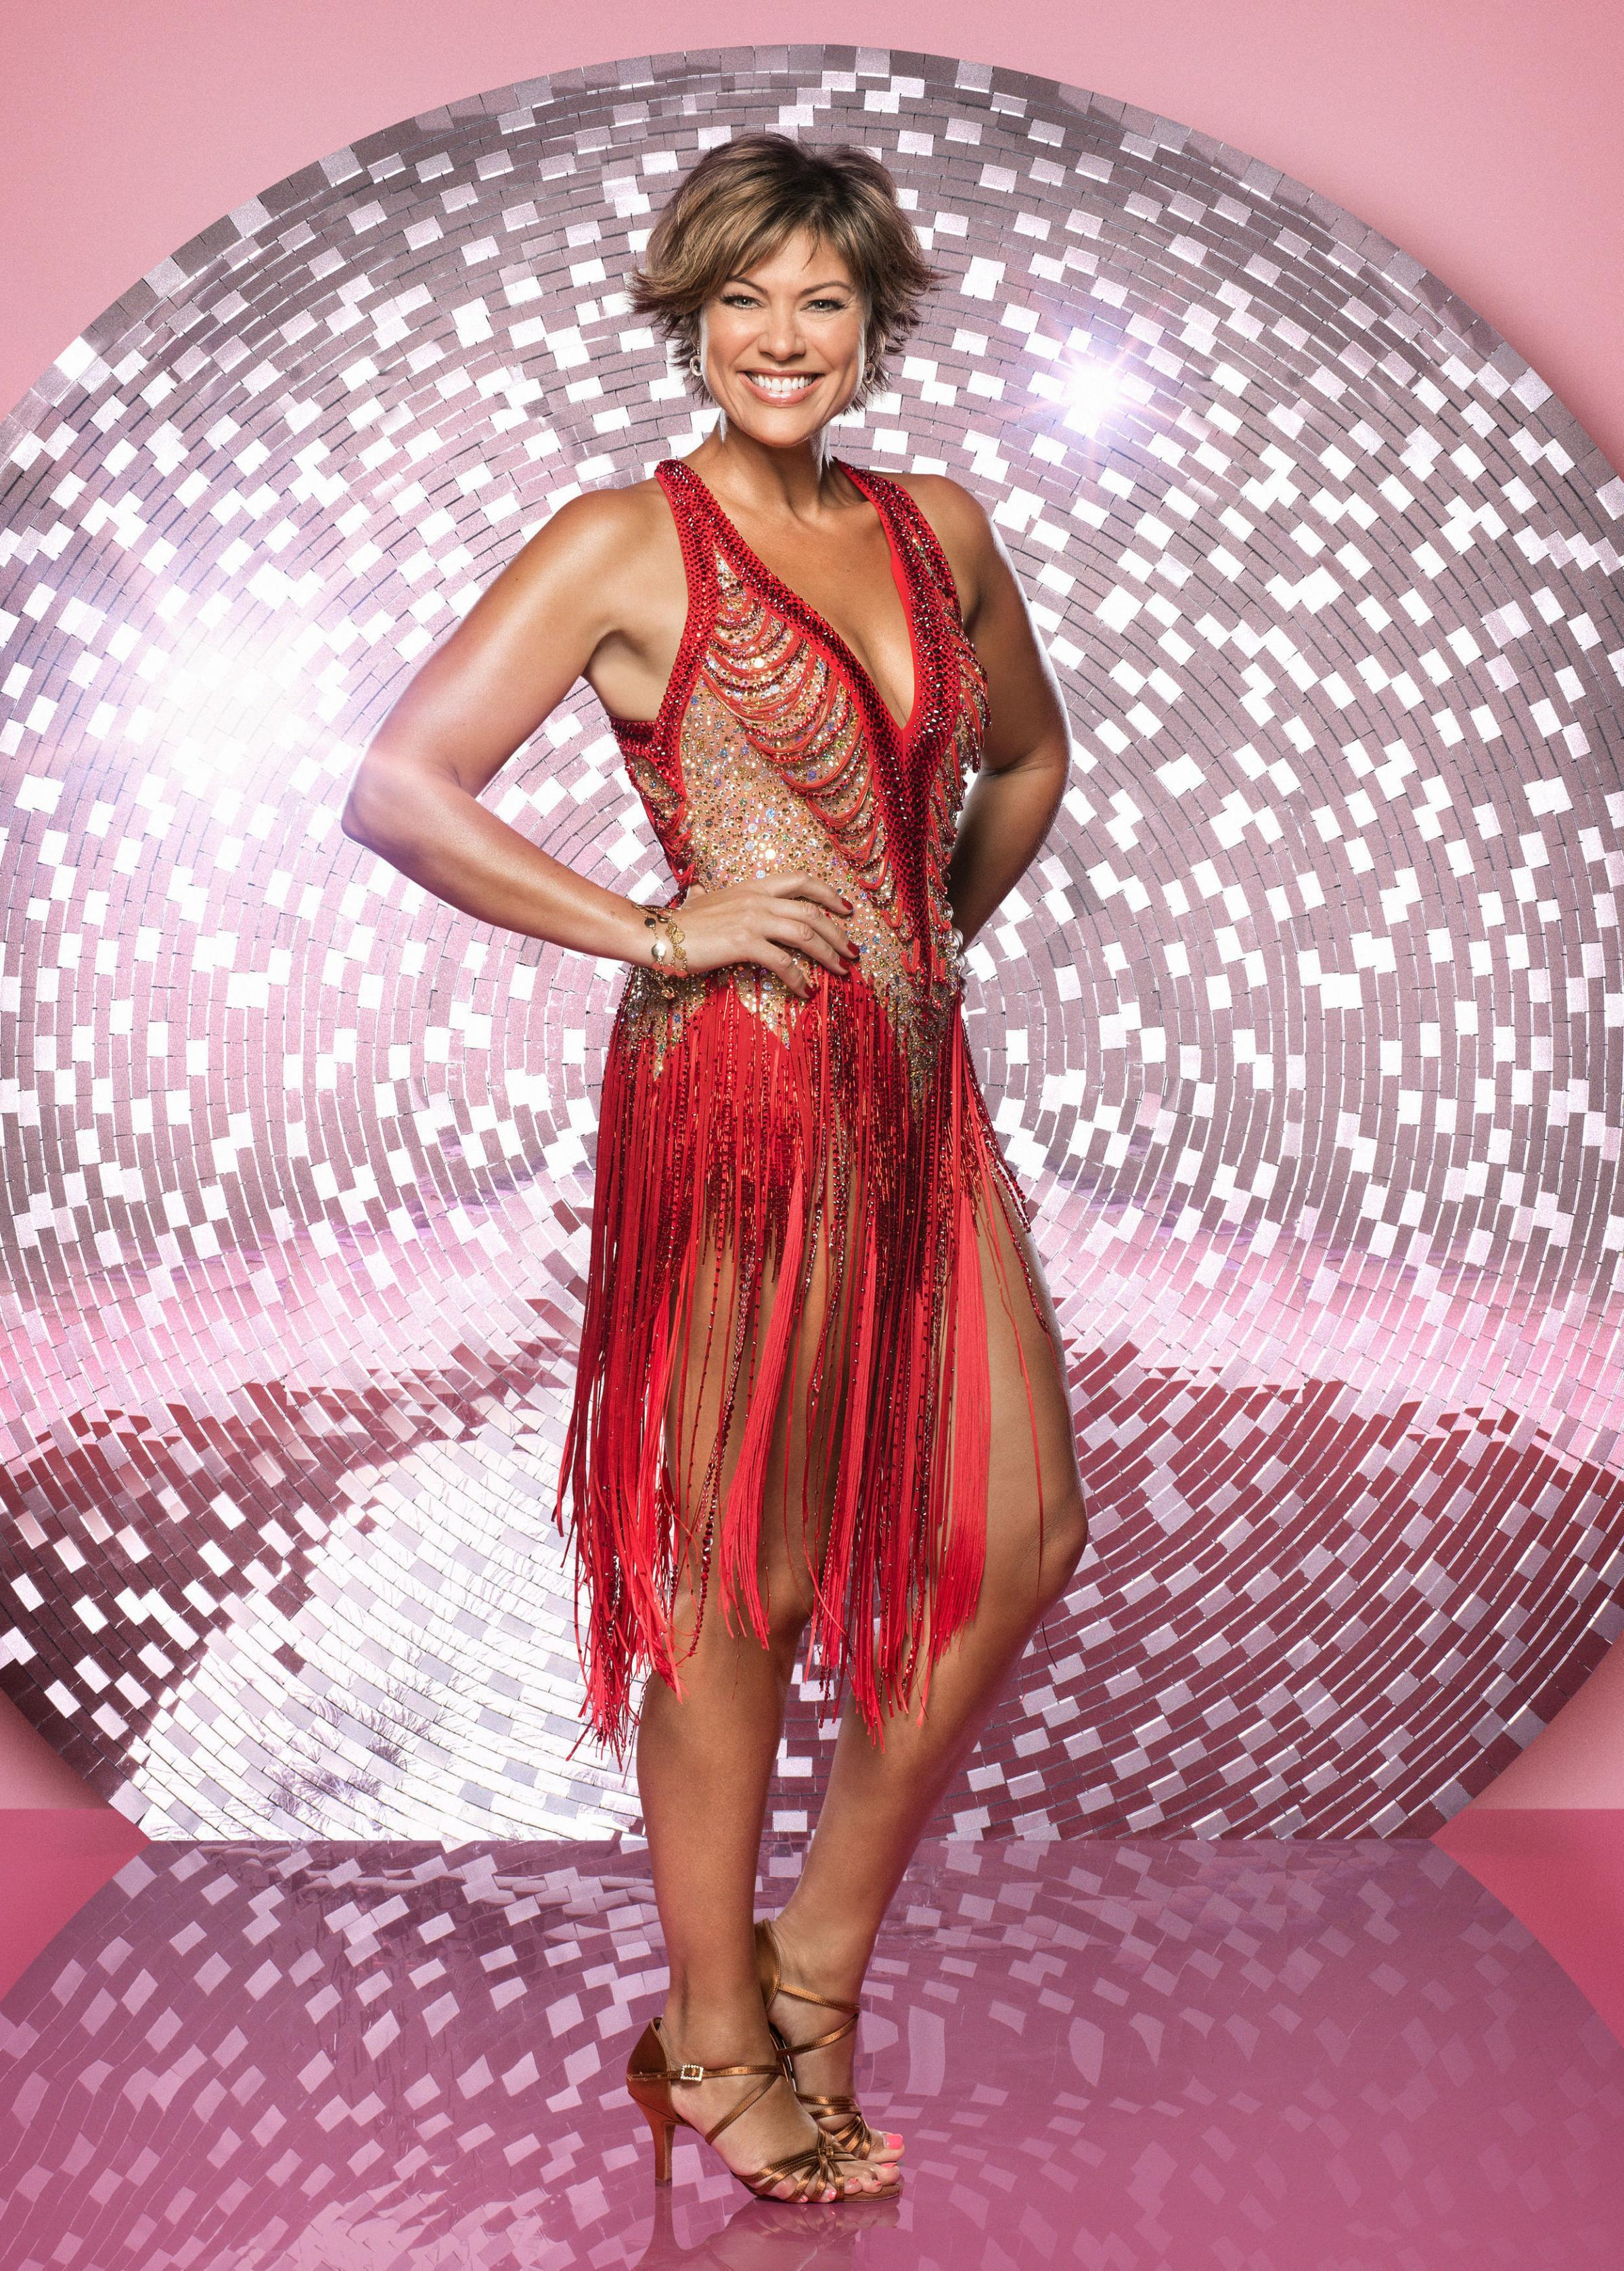 For use in UK, Ireland or Benelux countries only Undated BBC handout photo of Strictly Come Dancing 2018 contestant, Kate Silverton, who has admitted that her husband has had to be more understanding than she expected after her first dance on the show saw